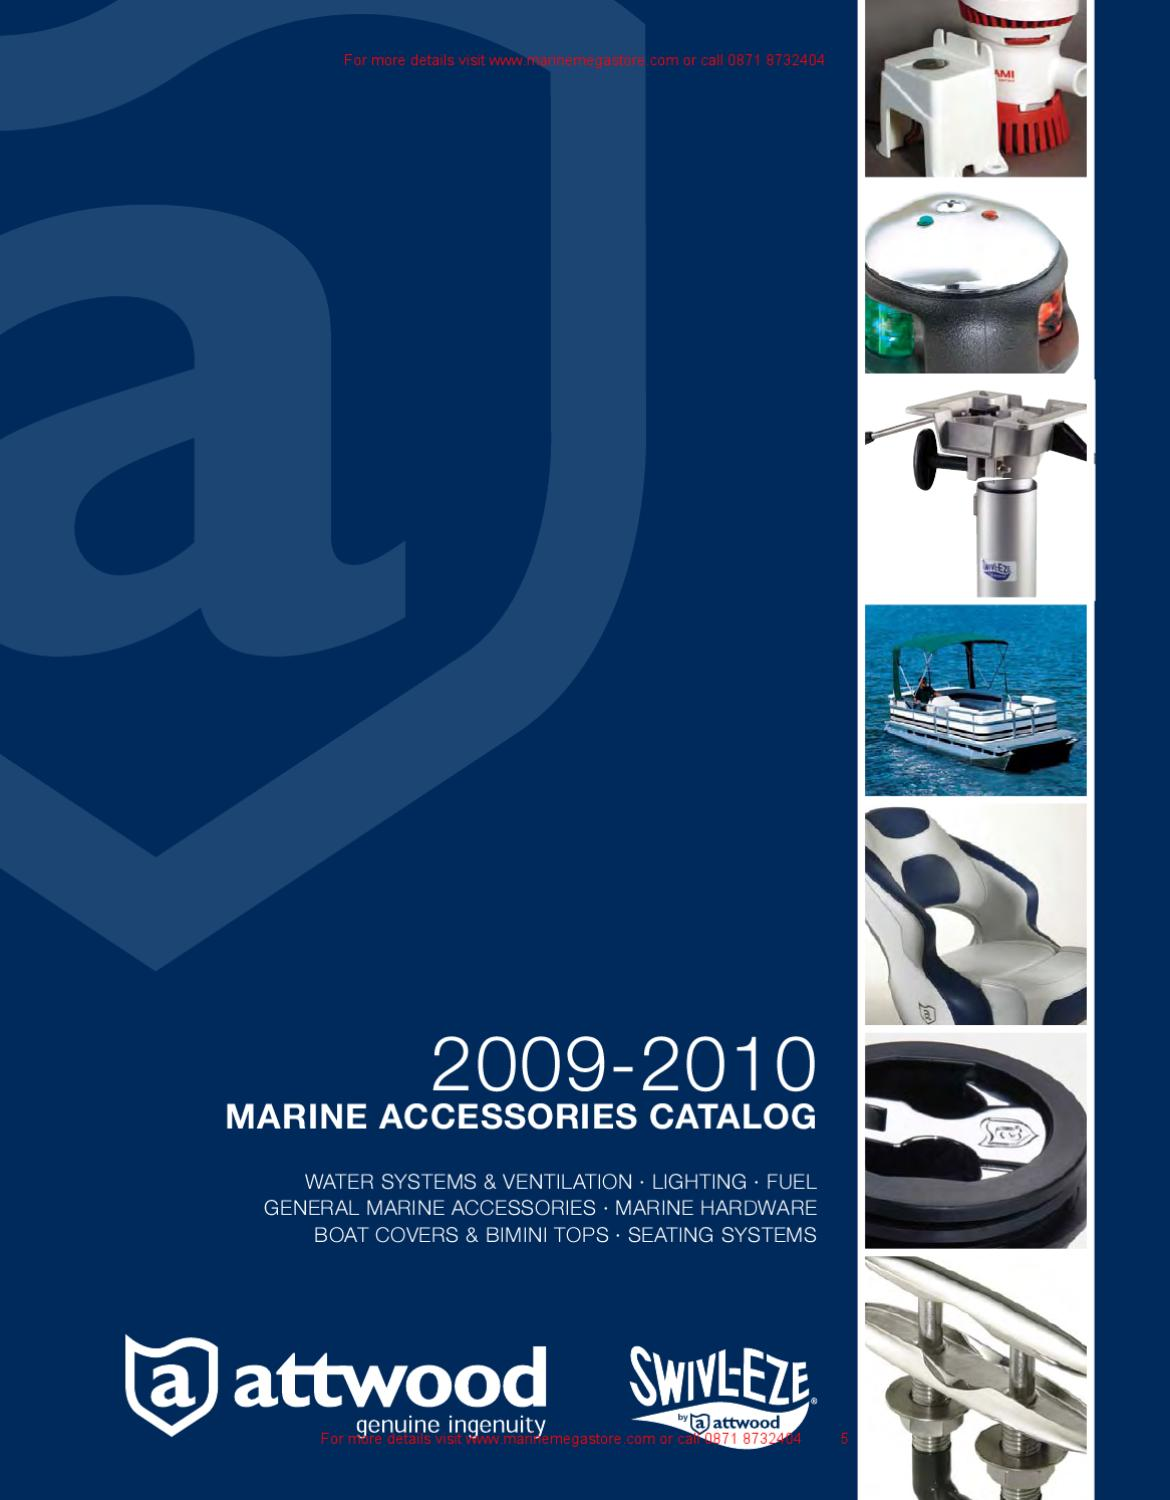 seaark 24v trolling motor wiring diagram attwood 2009 2010 marine accessories catalog by marine mega store  attwood 2009 2010 marine accessories